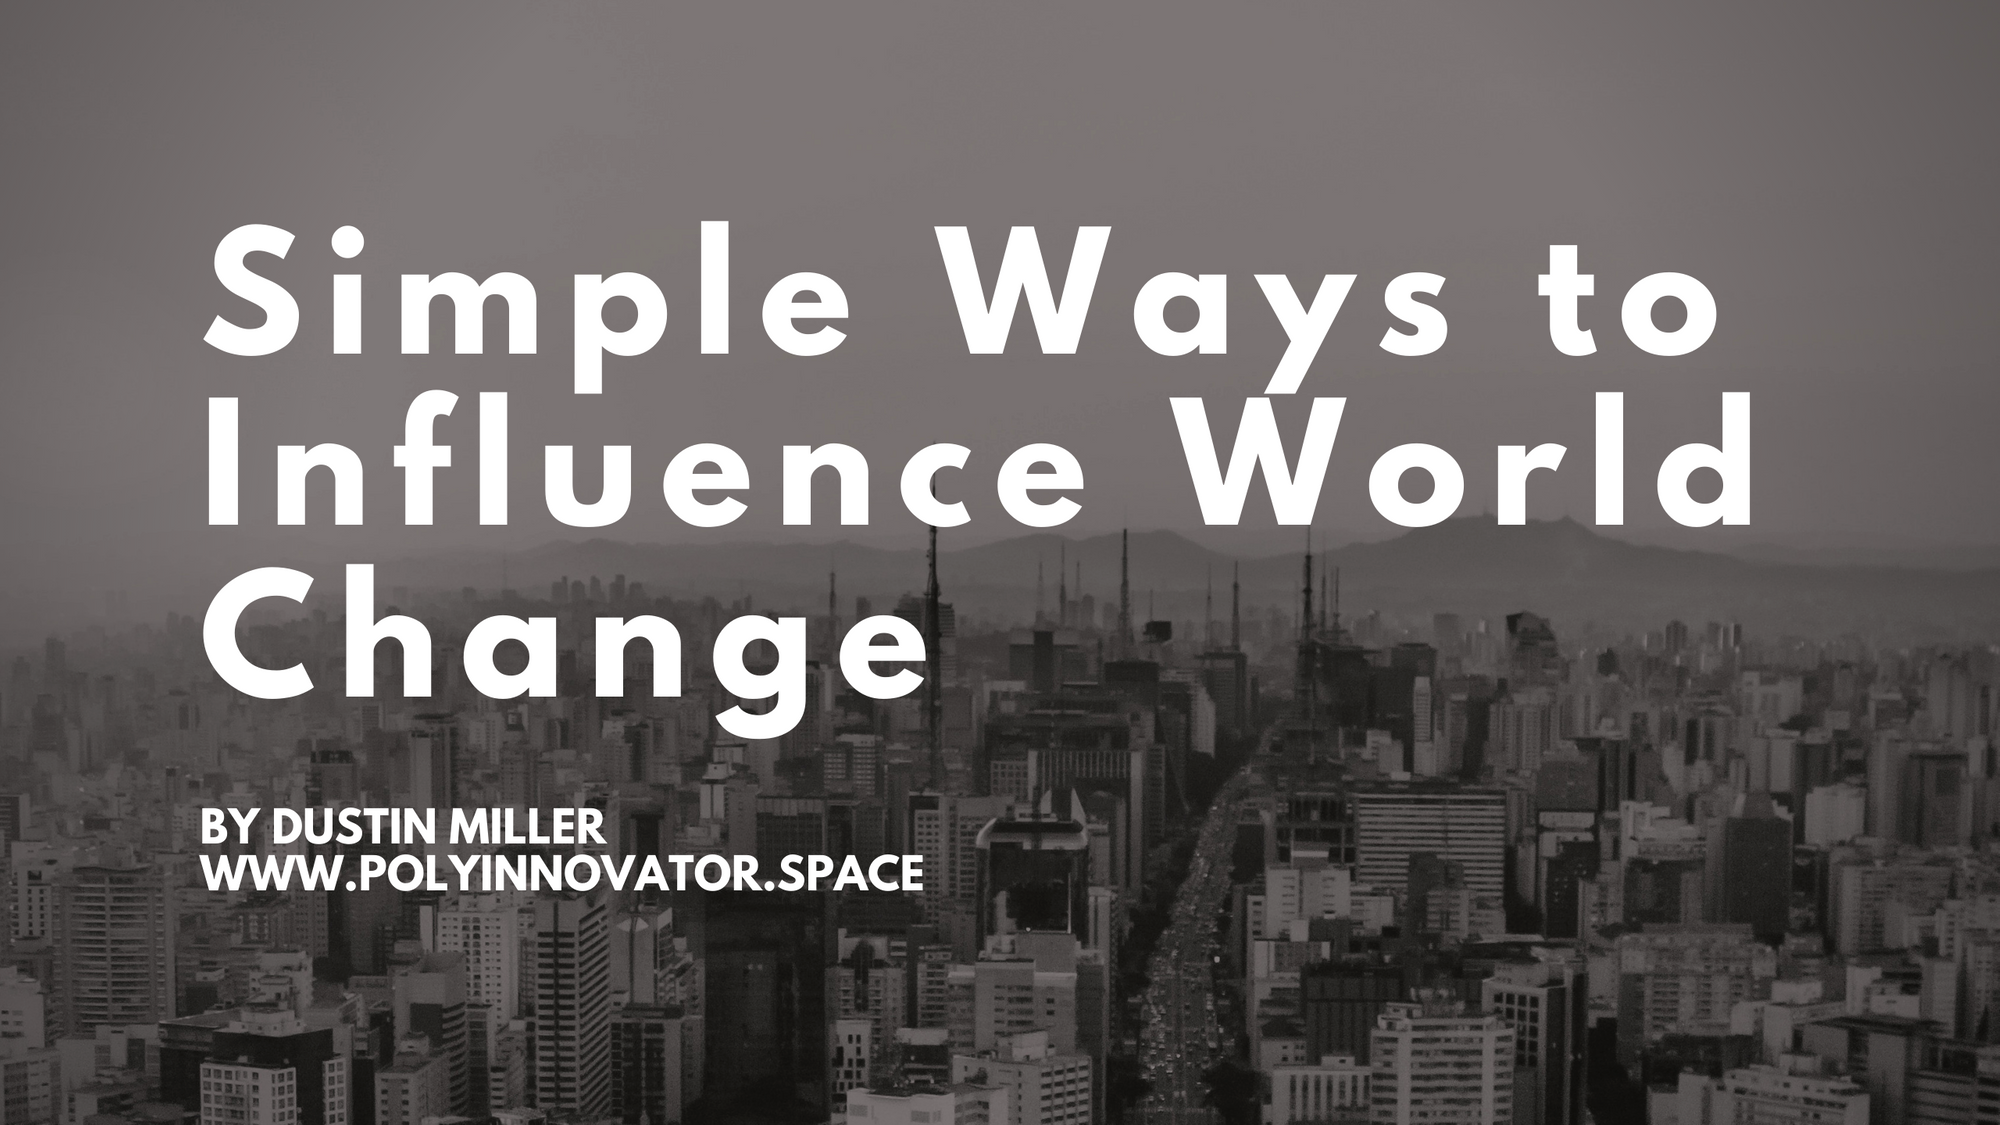 Simple Ways to Influence World Change